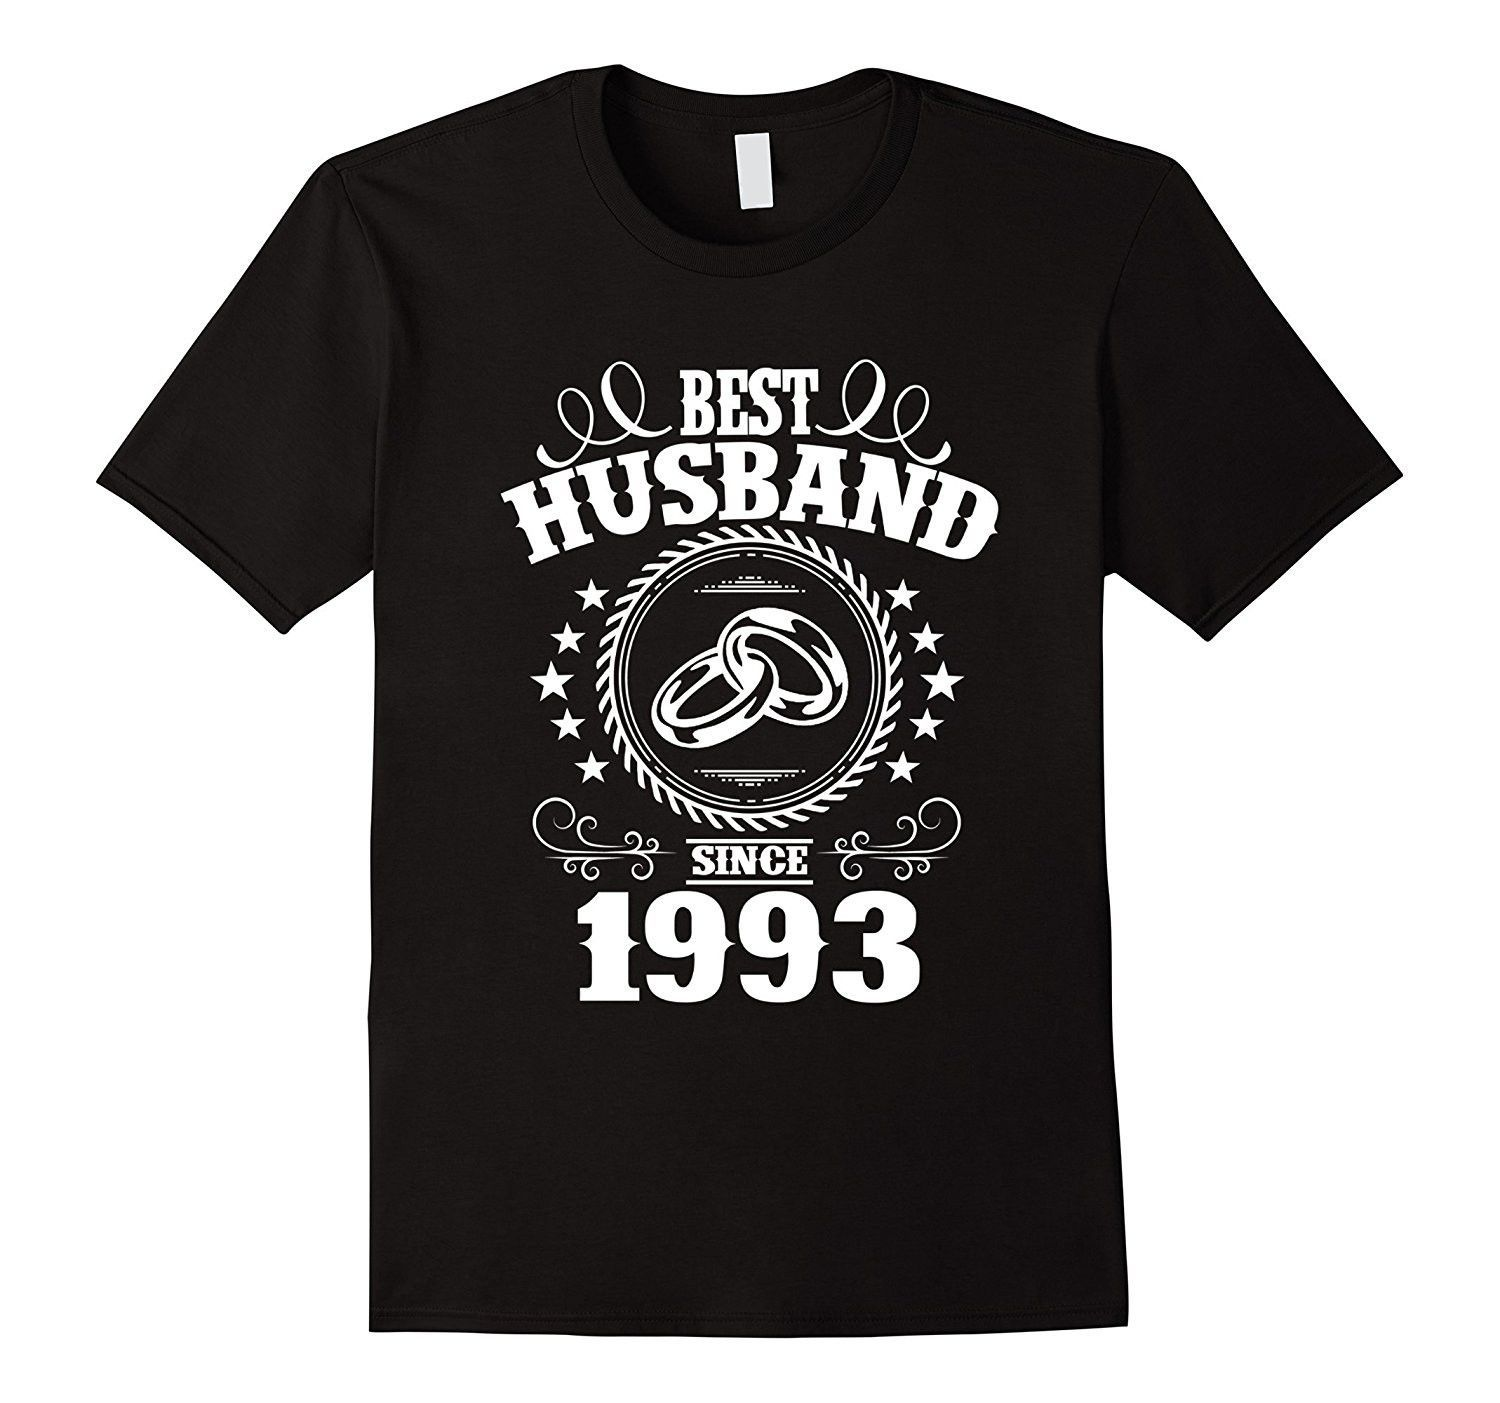 24th Wedding Anniversary TShirts For Husband From Wife